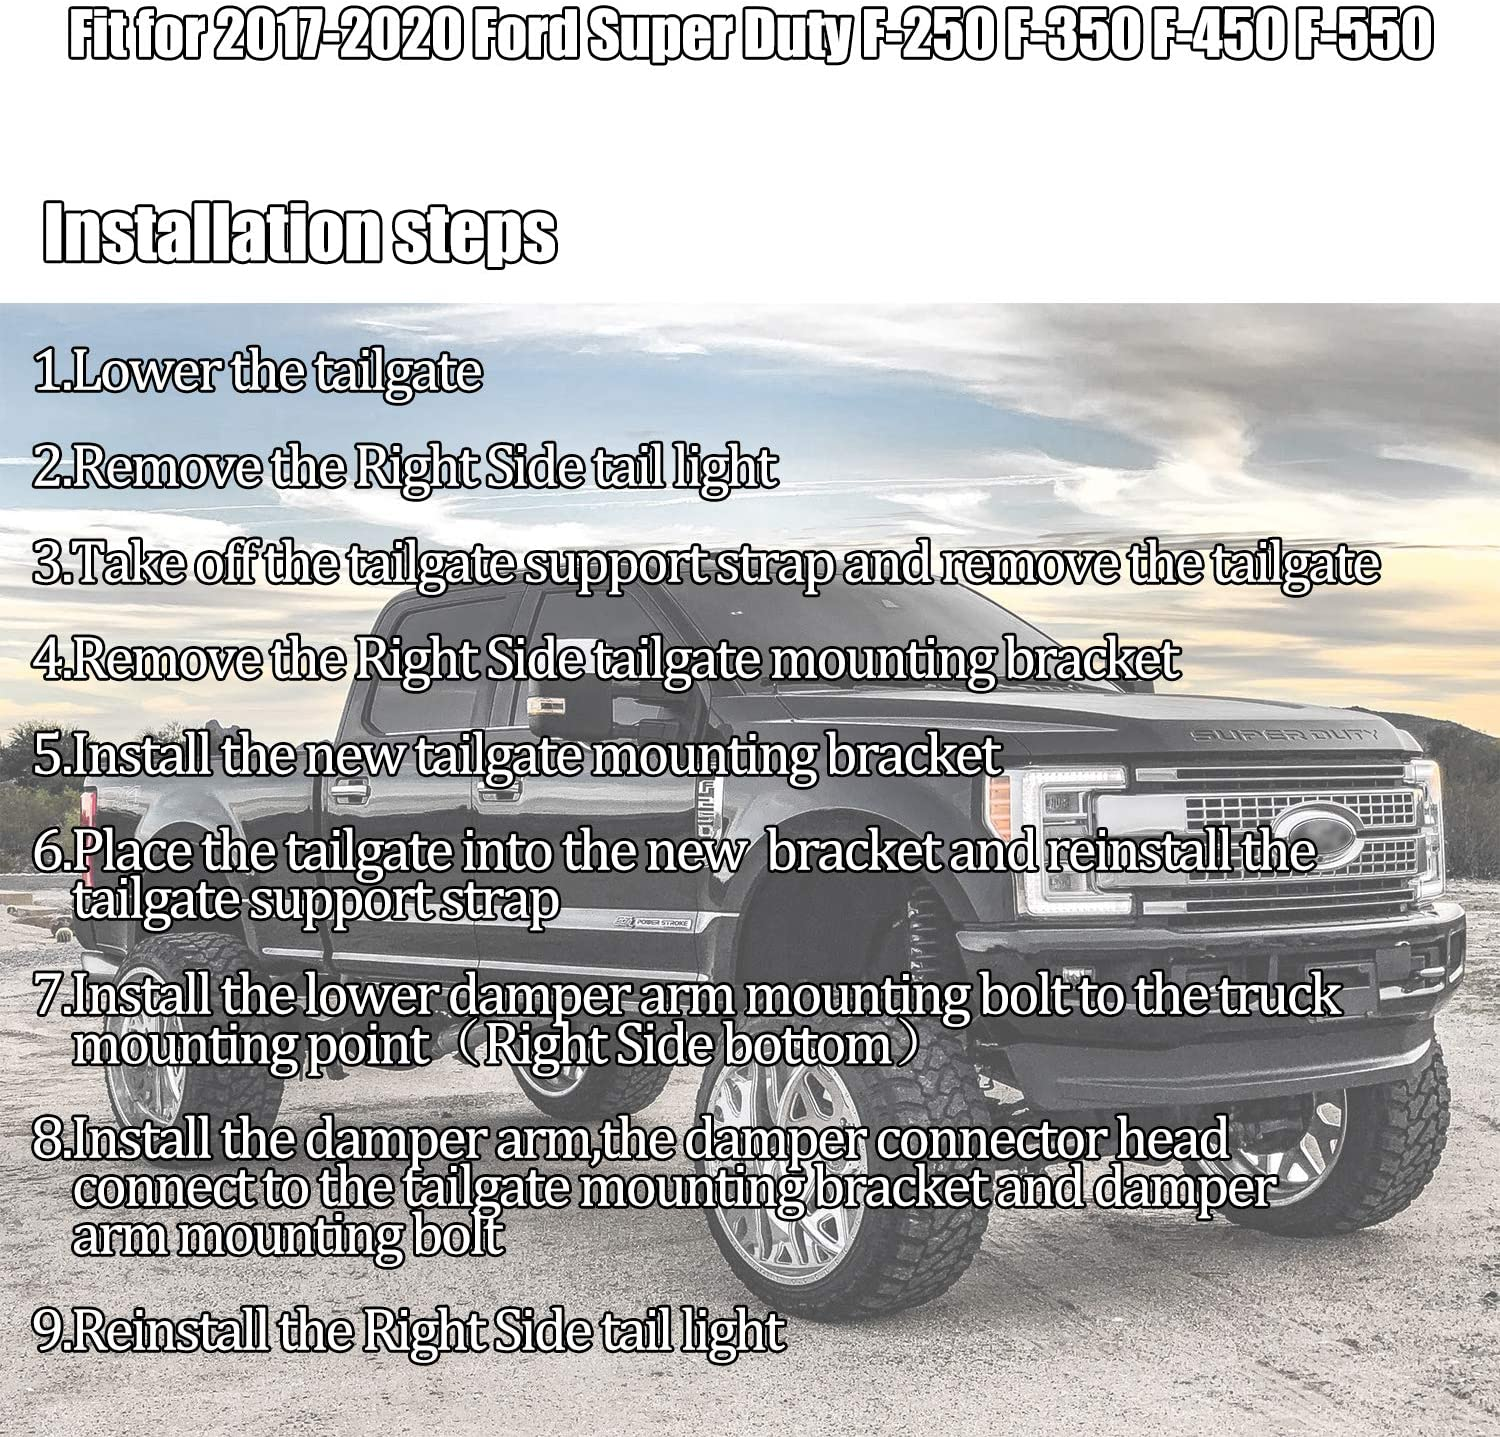 RANSOTO Tailgate Assist Tailgate Damper Kit Compatible with 2017-2020 Ford Super Duty F-250 F-350 F-450 F-550,Replace Part # HC3Z-99406A10-A